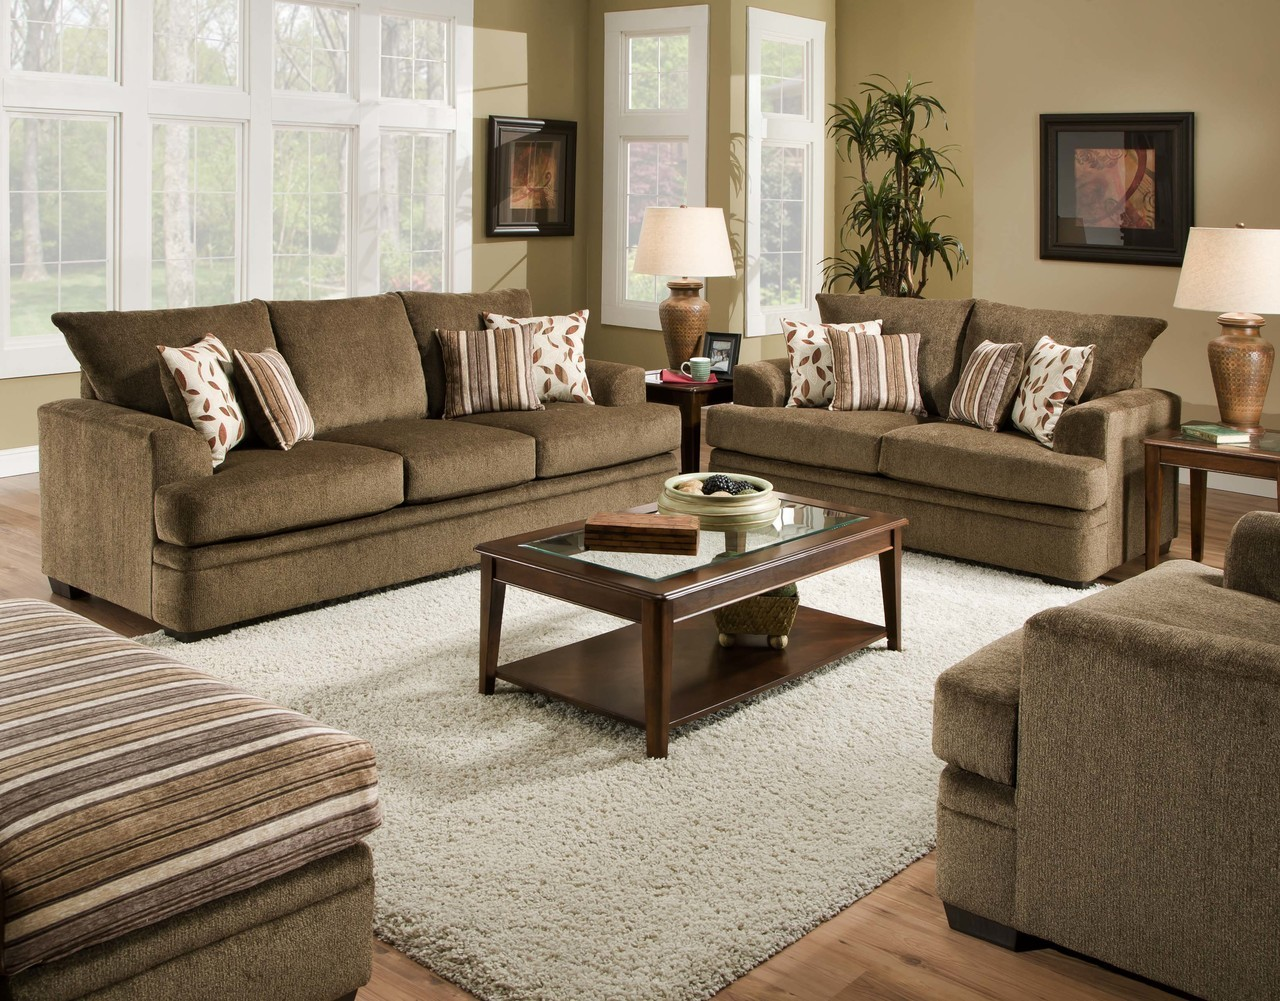 Remarkable Cornell Cocoa Sofa Loveseat Home Interior And Landscaping Eliaenasavecom